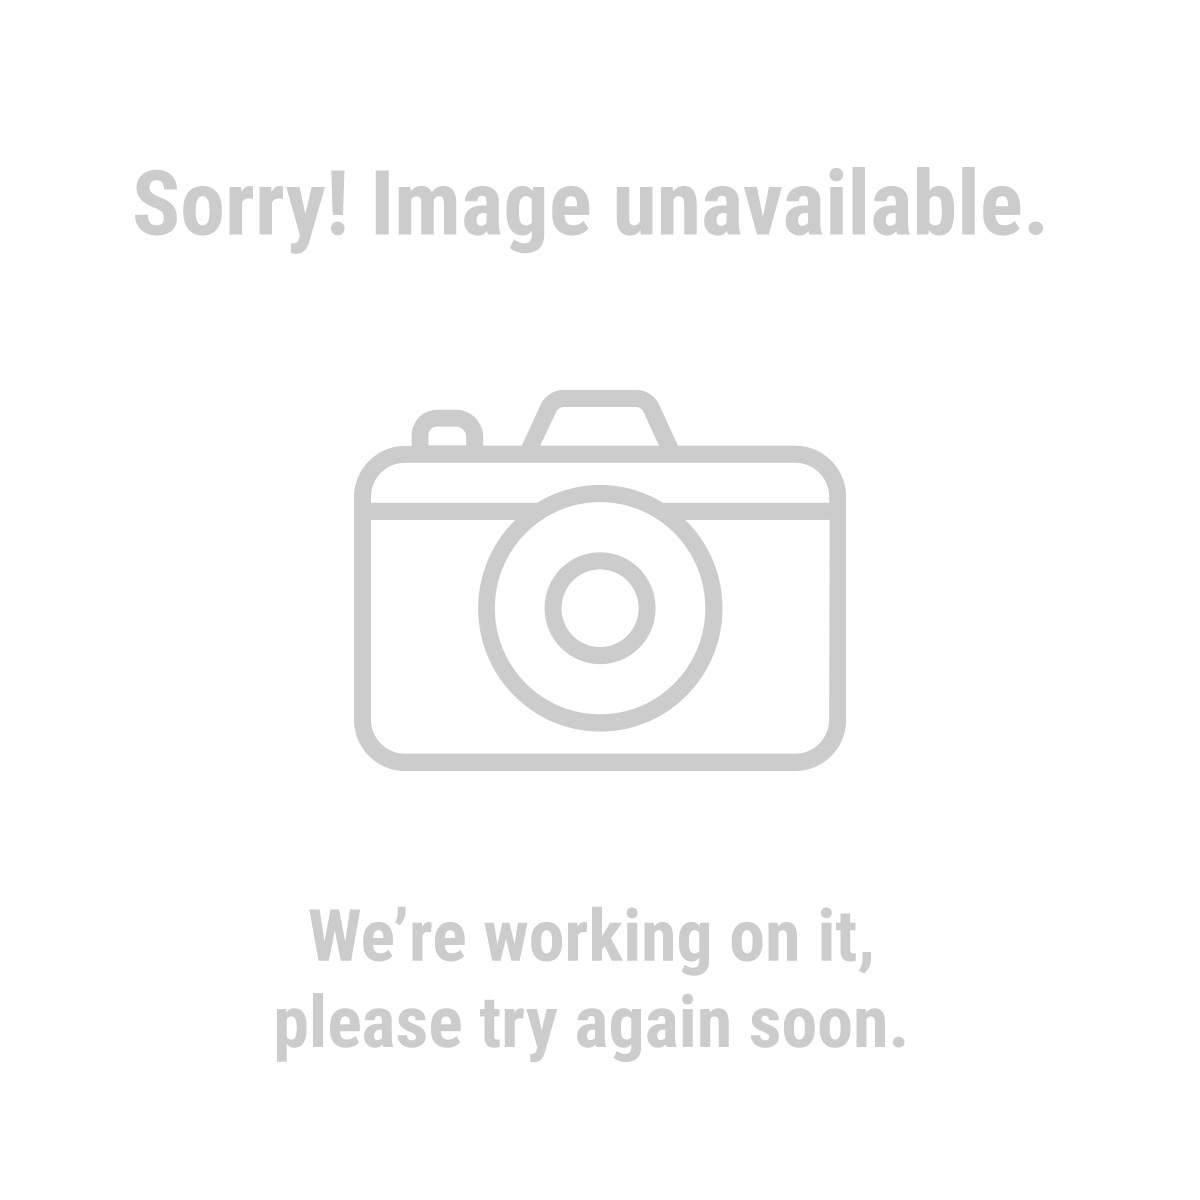 66348 White Coverall, X-Large